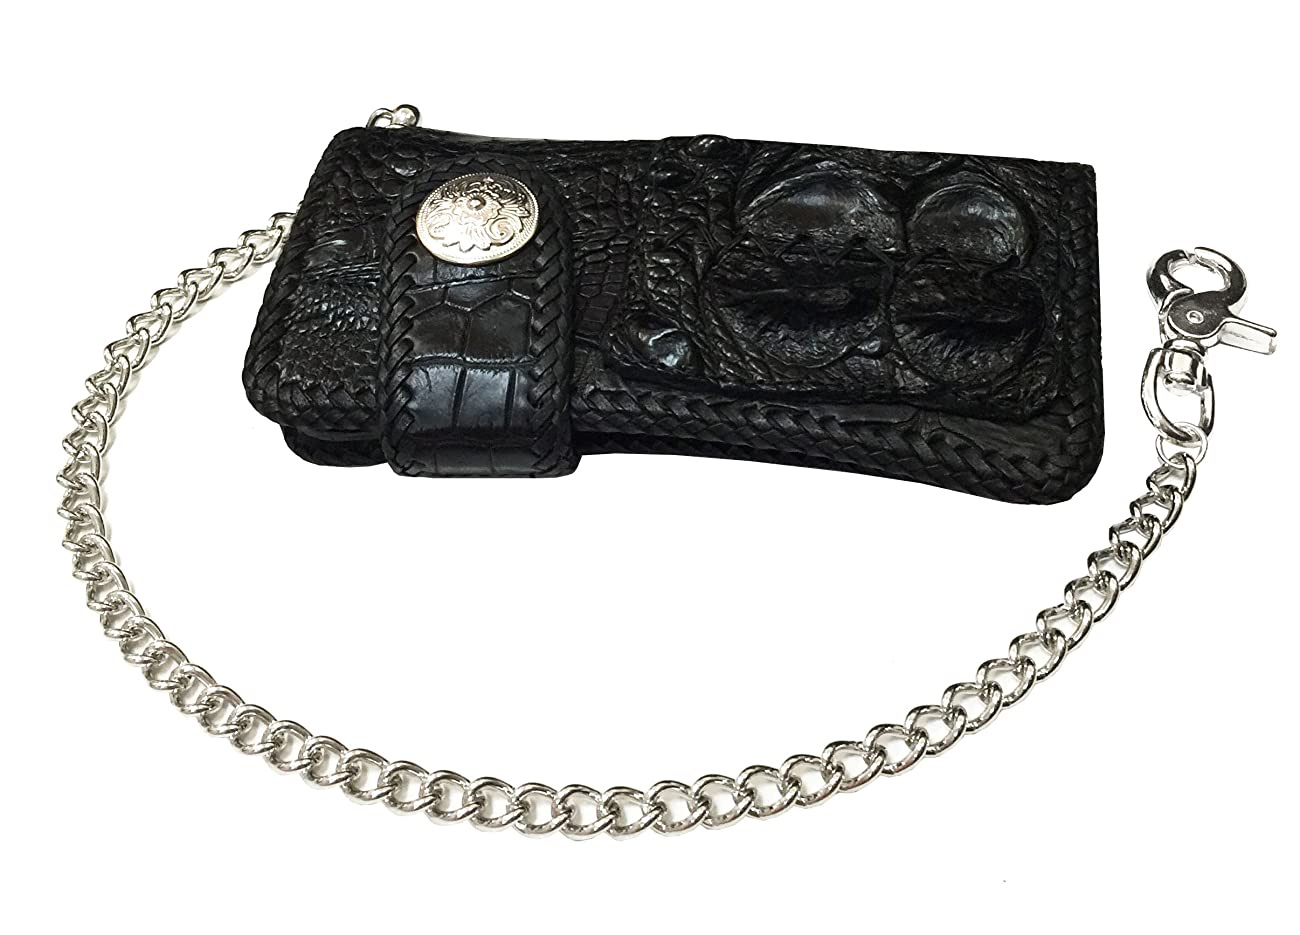 D'SHARK Luxury Biker Crocodile Skin Leather Bi-fold Snap Wallet (Black) 1